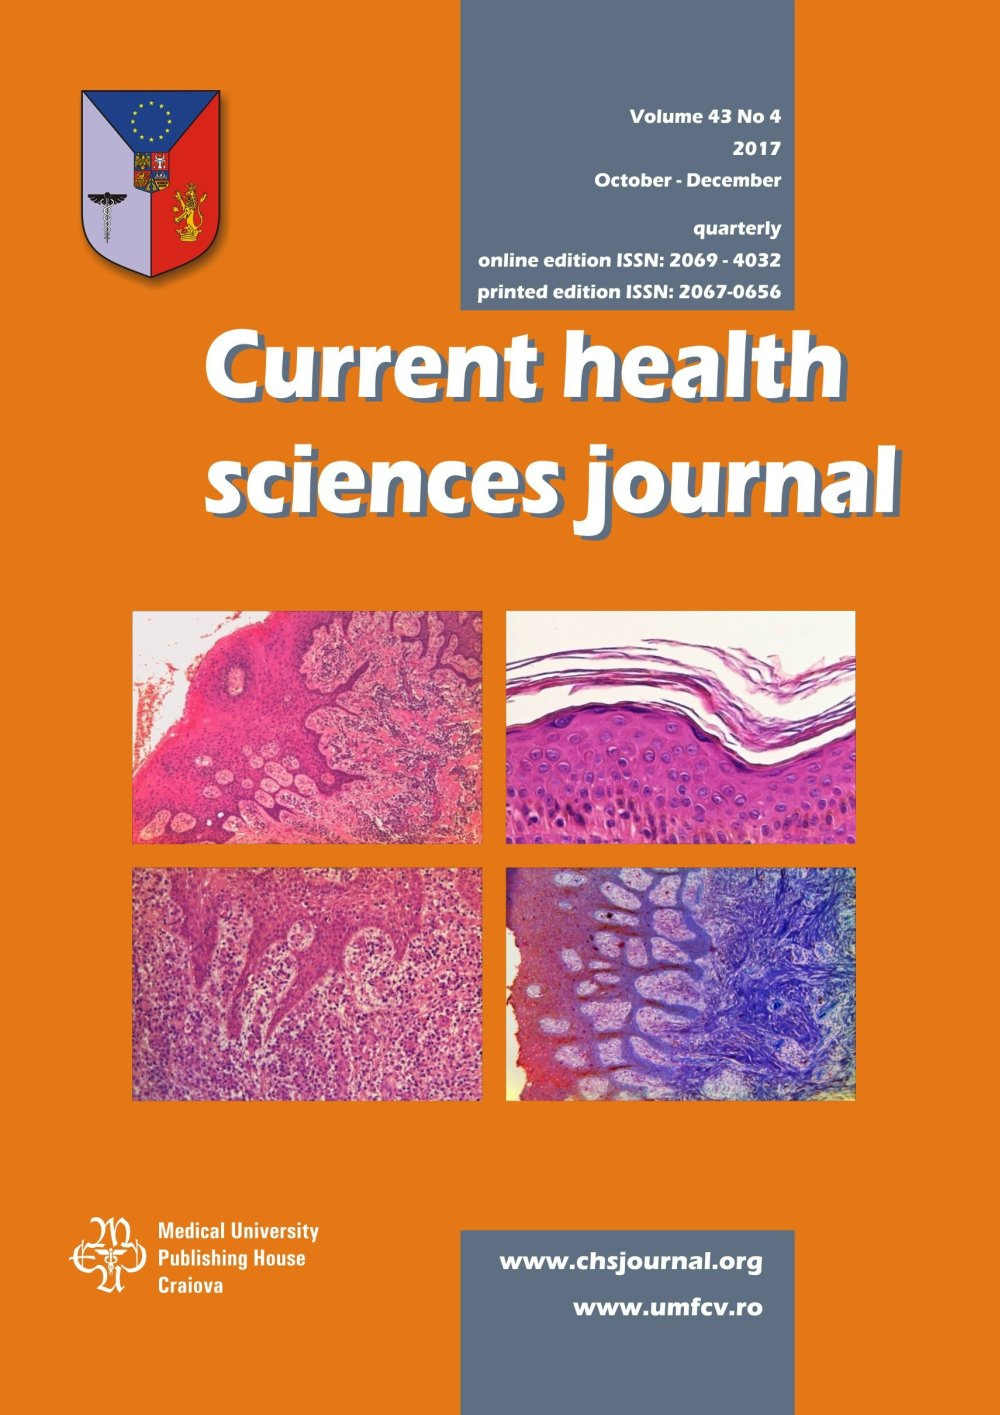 Current Health Sciences Journal, vol. 43 no. 4, 2017